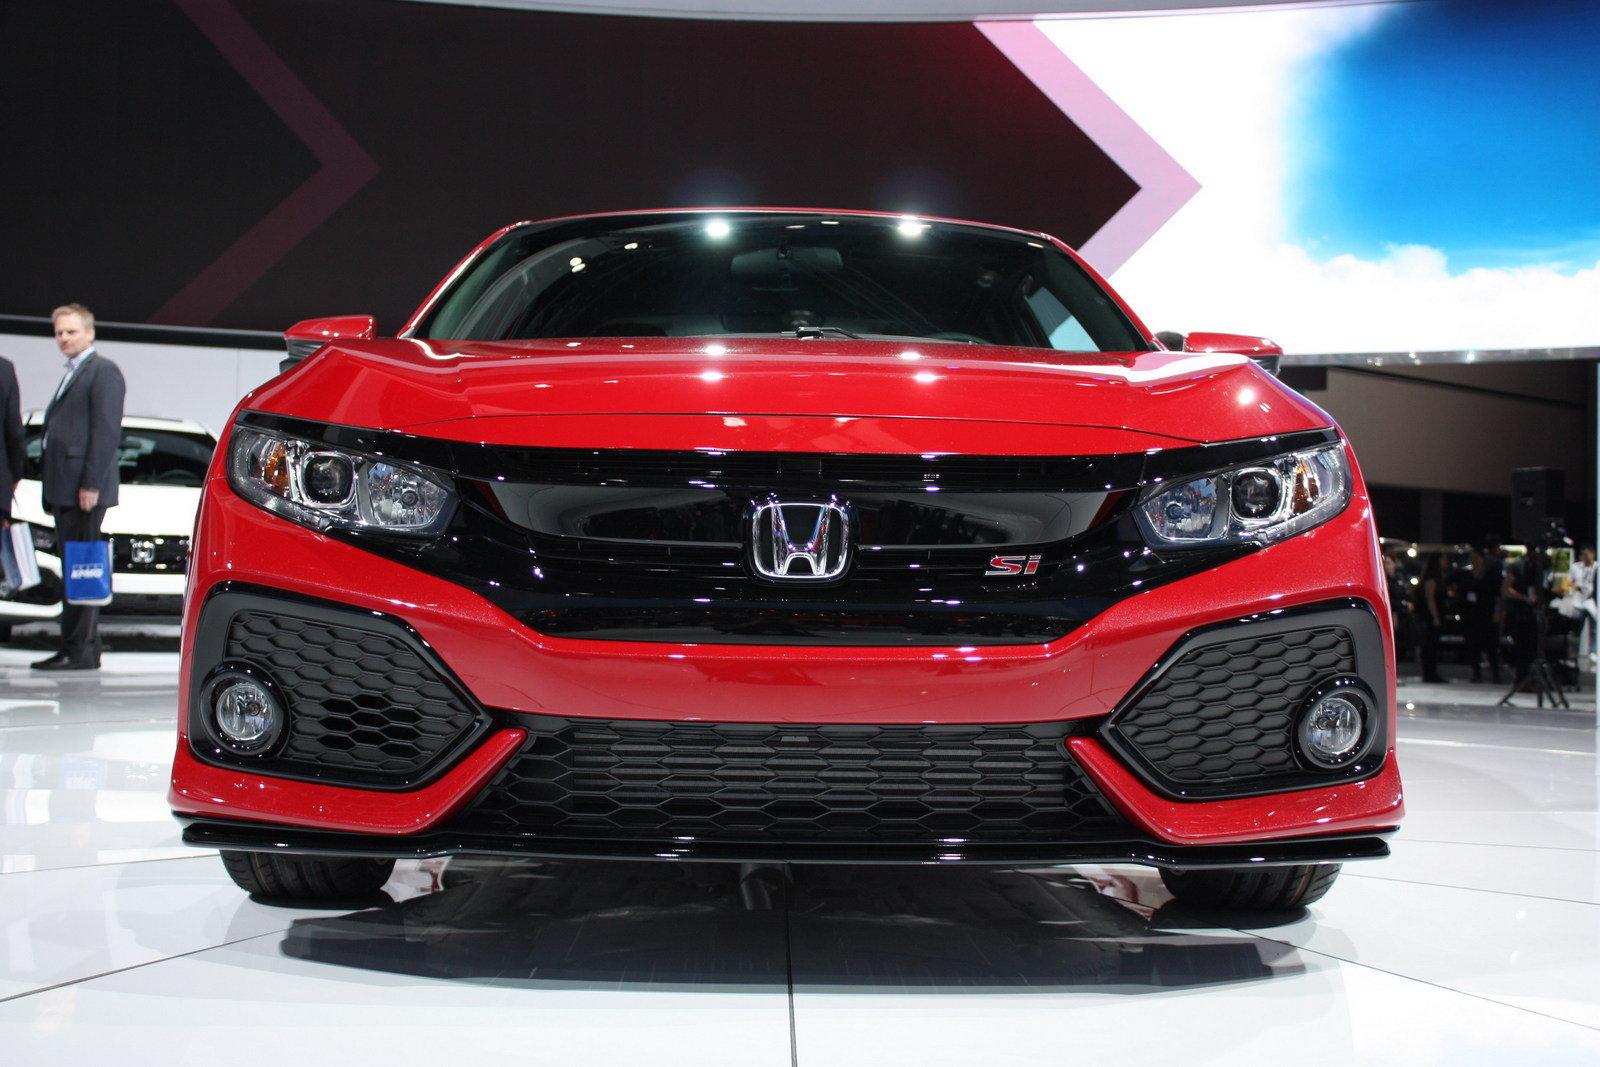 2017 honda civic si picture 696192 car review top speed. Black Bedroom Furniture Sets. Home Design Ideas